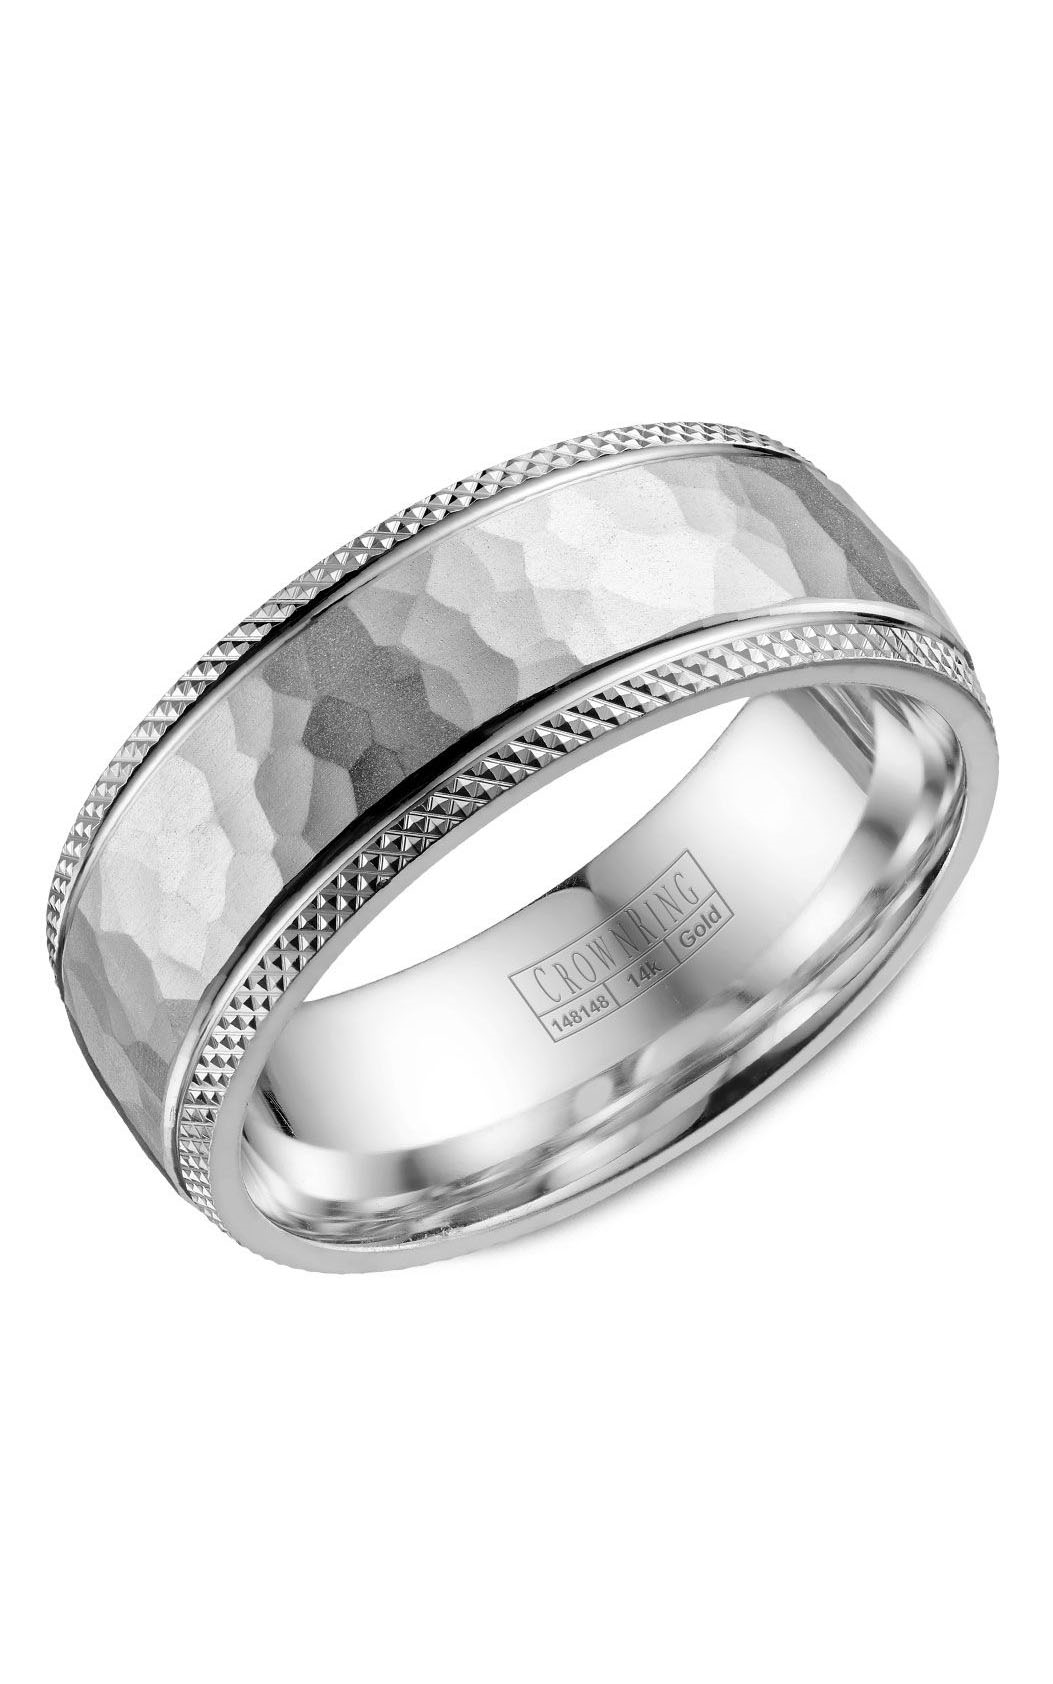 CrownRing Classic and Carved Wedding Band WB-035C8W product image